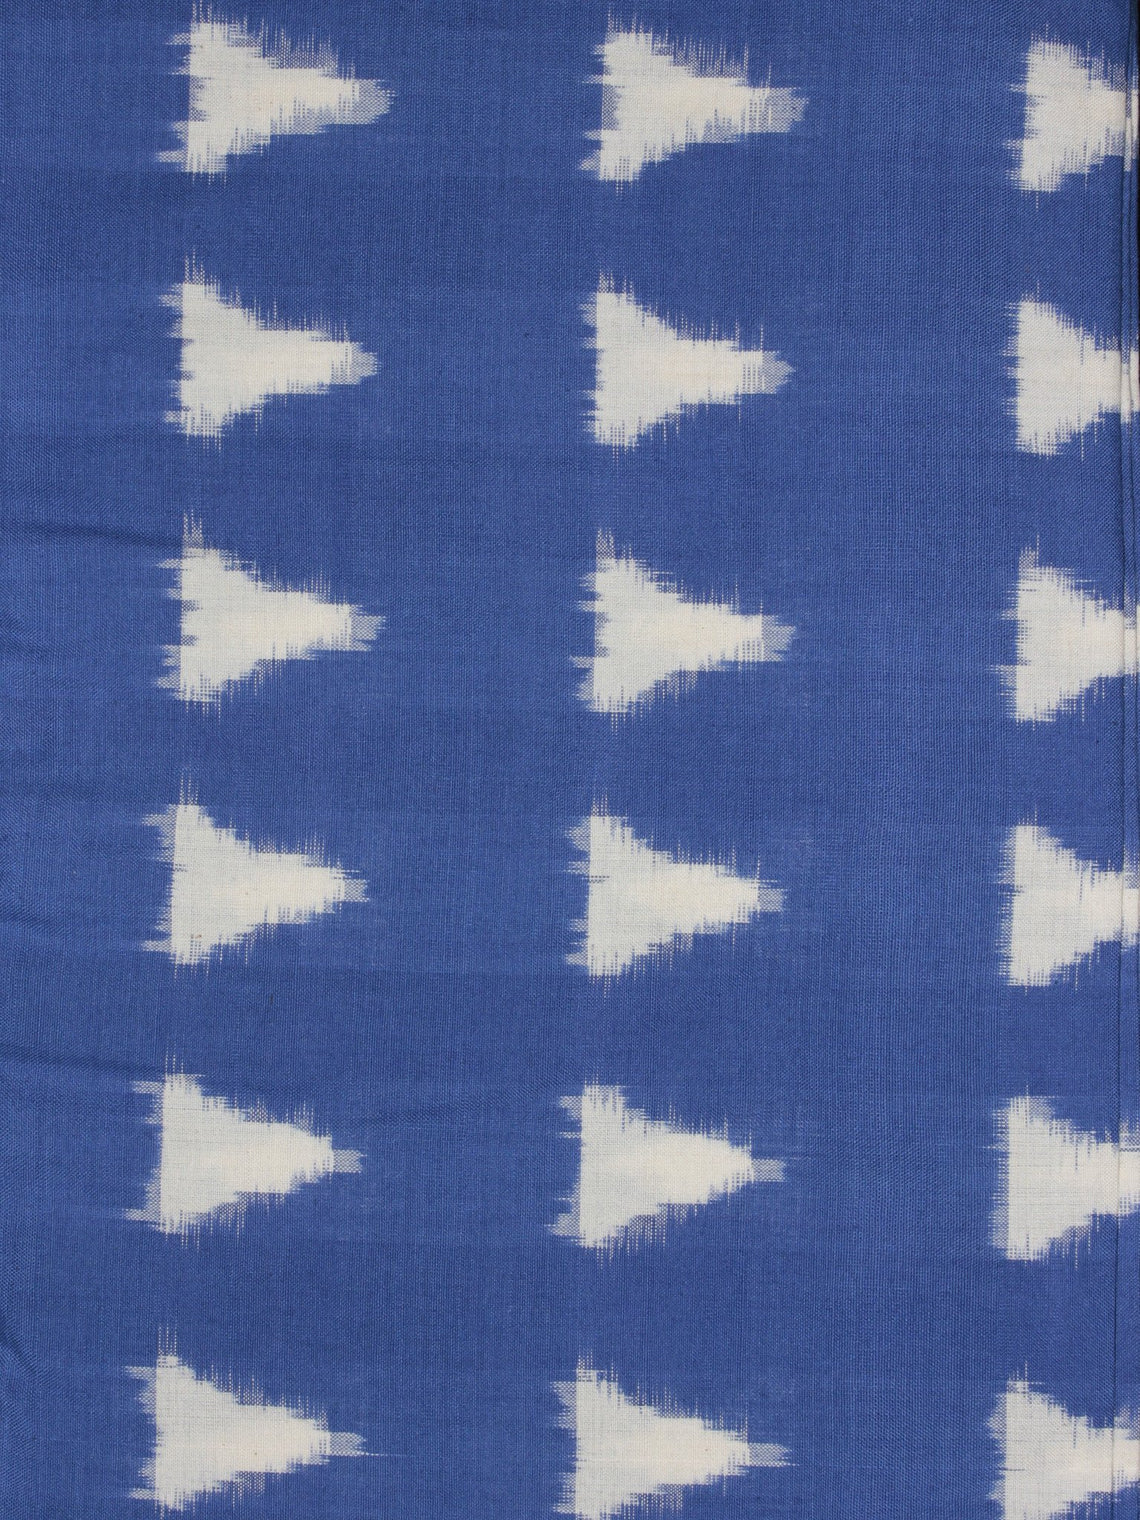 Cobalt Blue Ivory Pochampally Hand Weaved Double Ikat Traingular Fabric Per Meter - F0916757